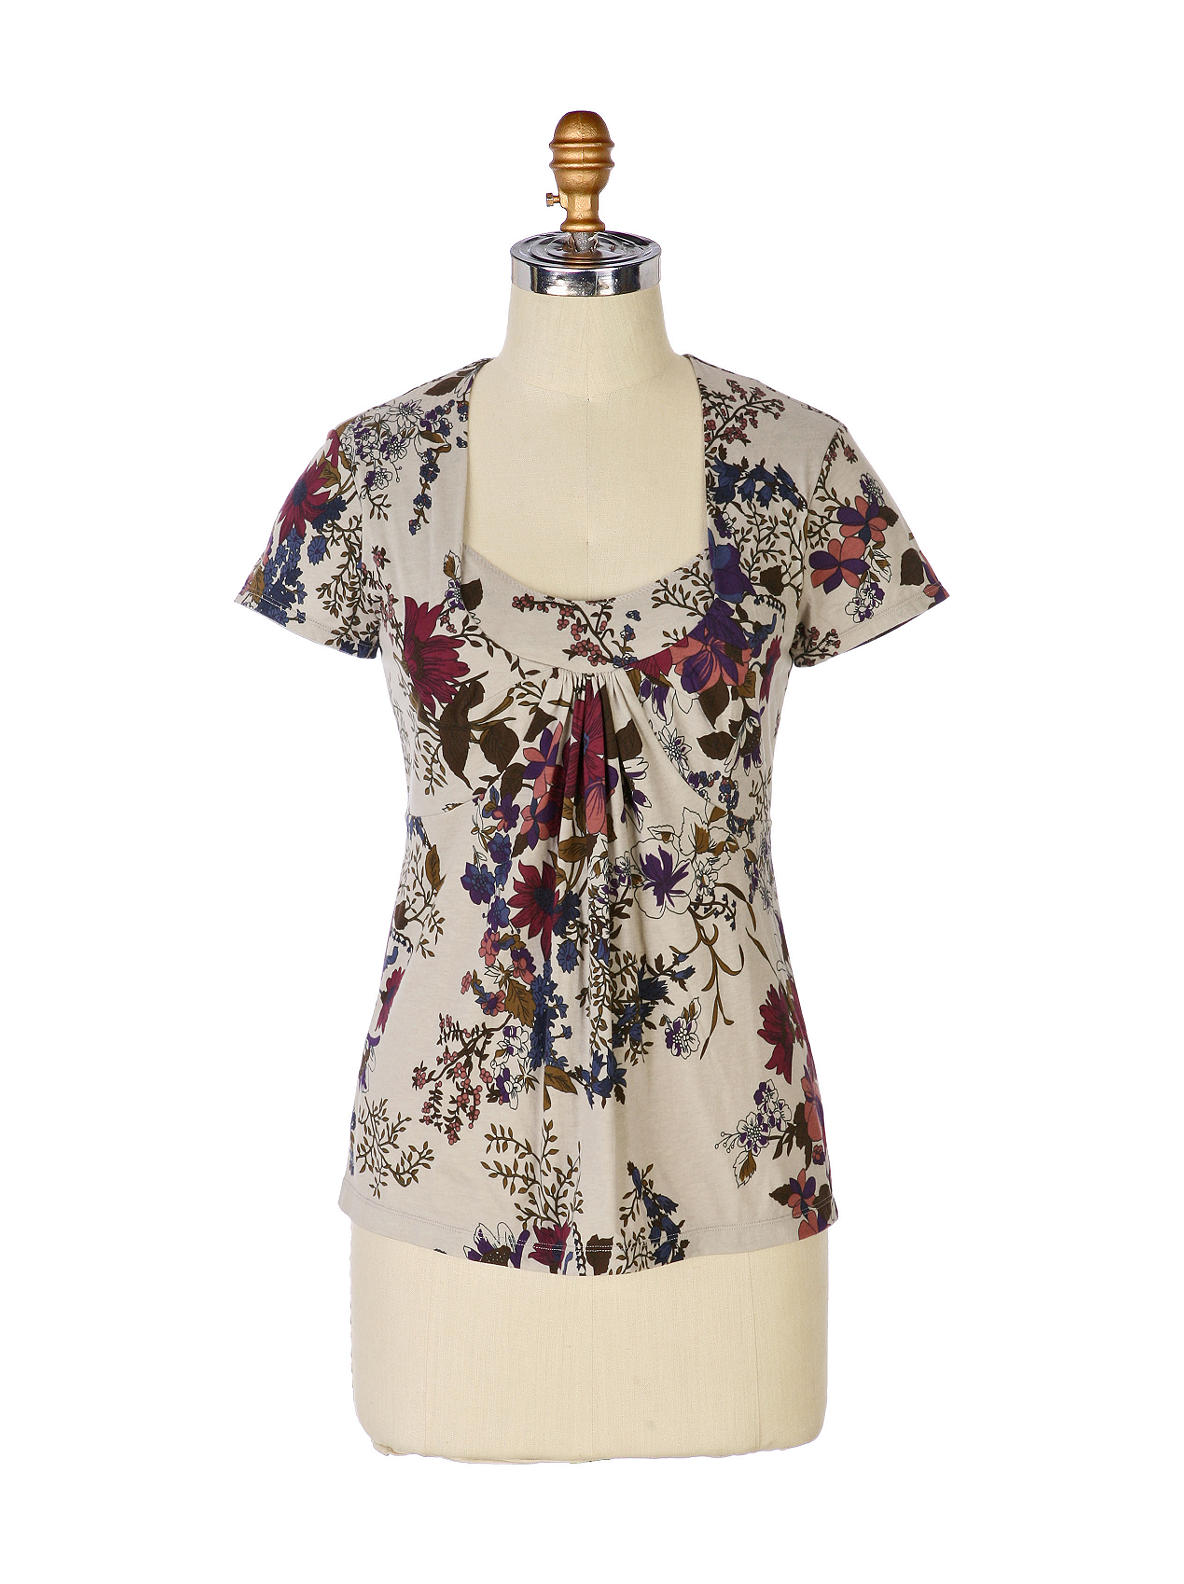 Rismal Sweetheart Tee - Anthropologie.com